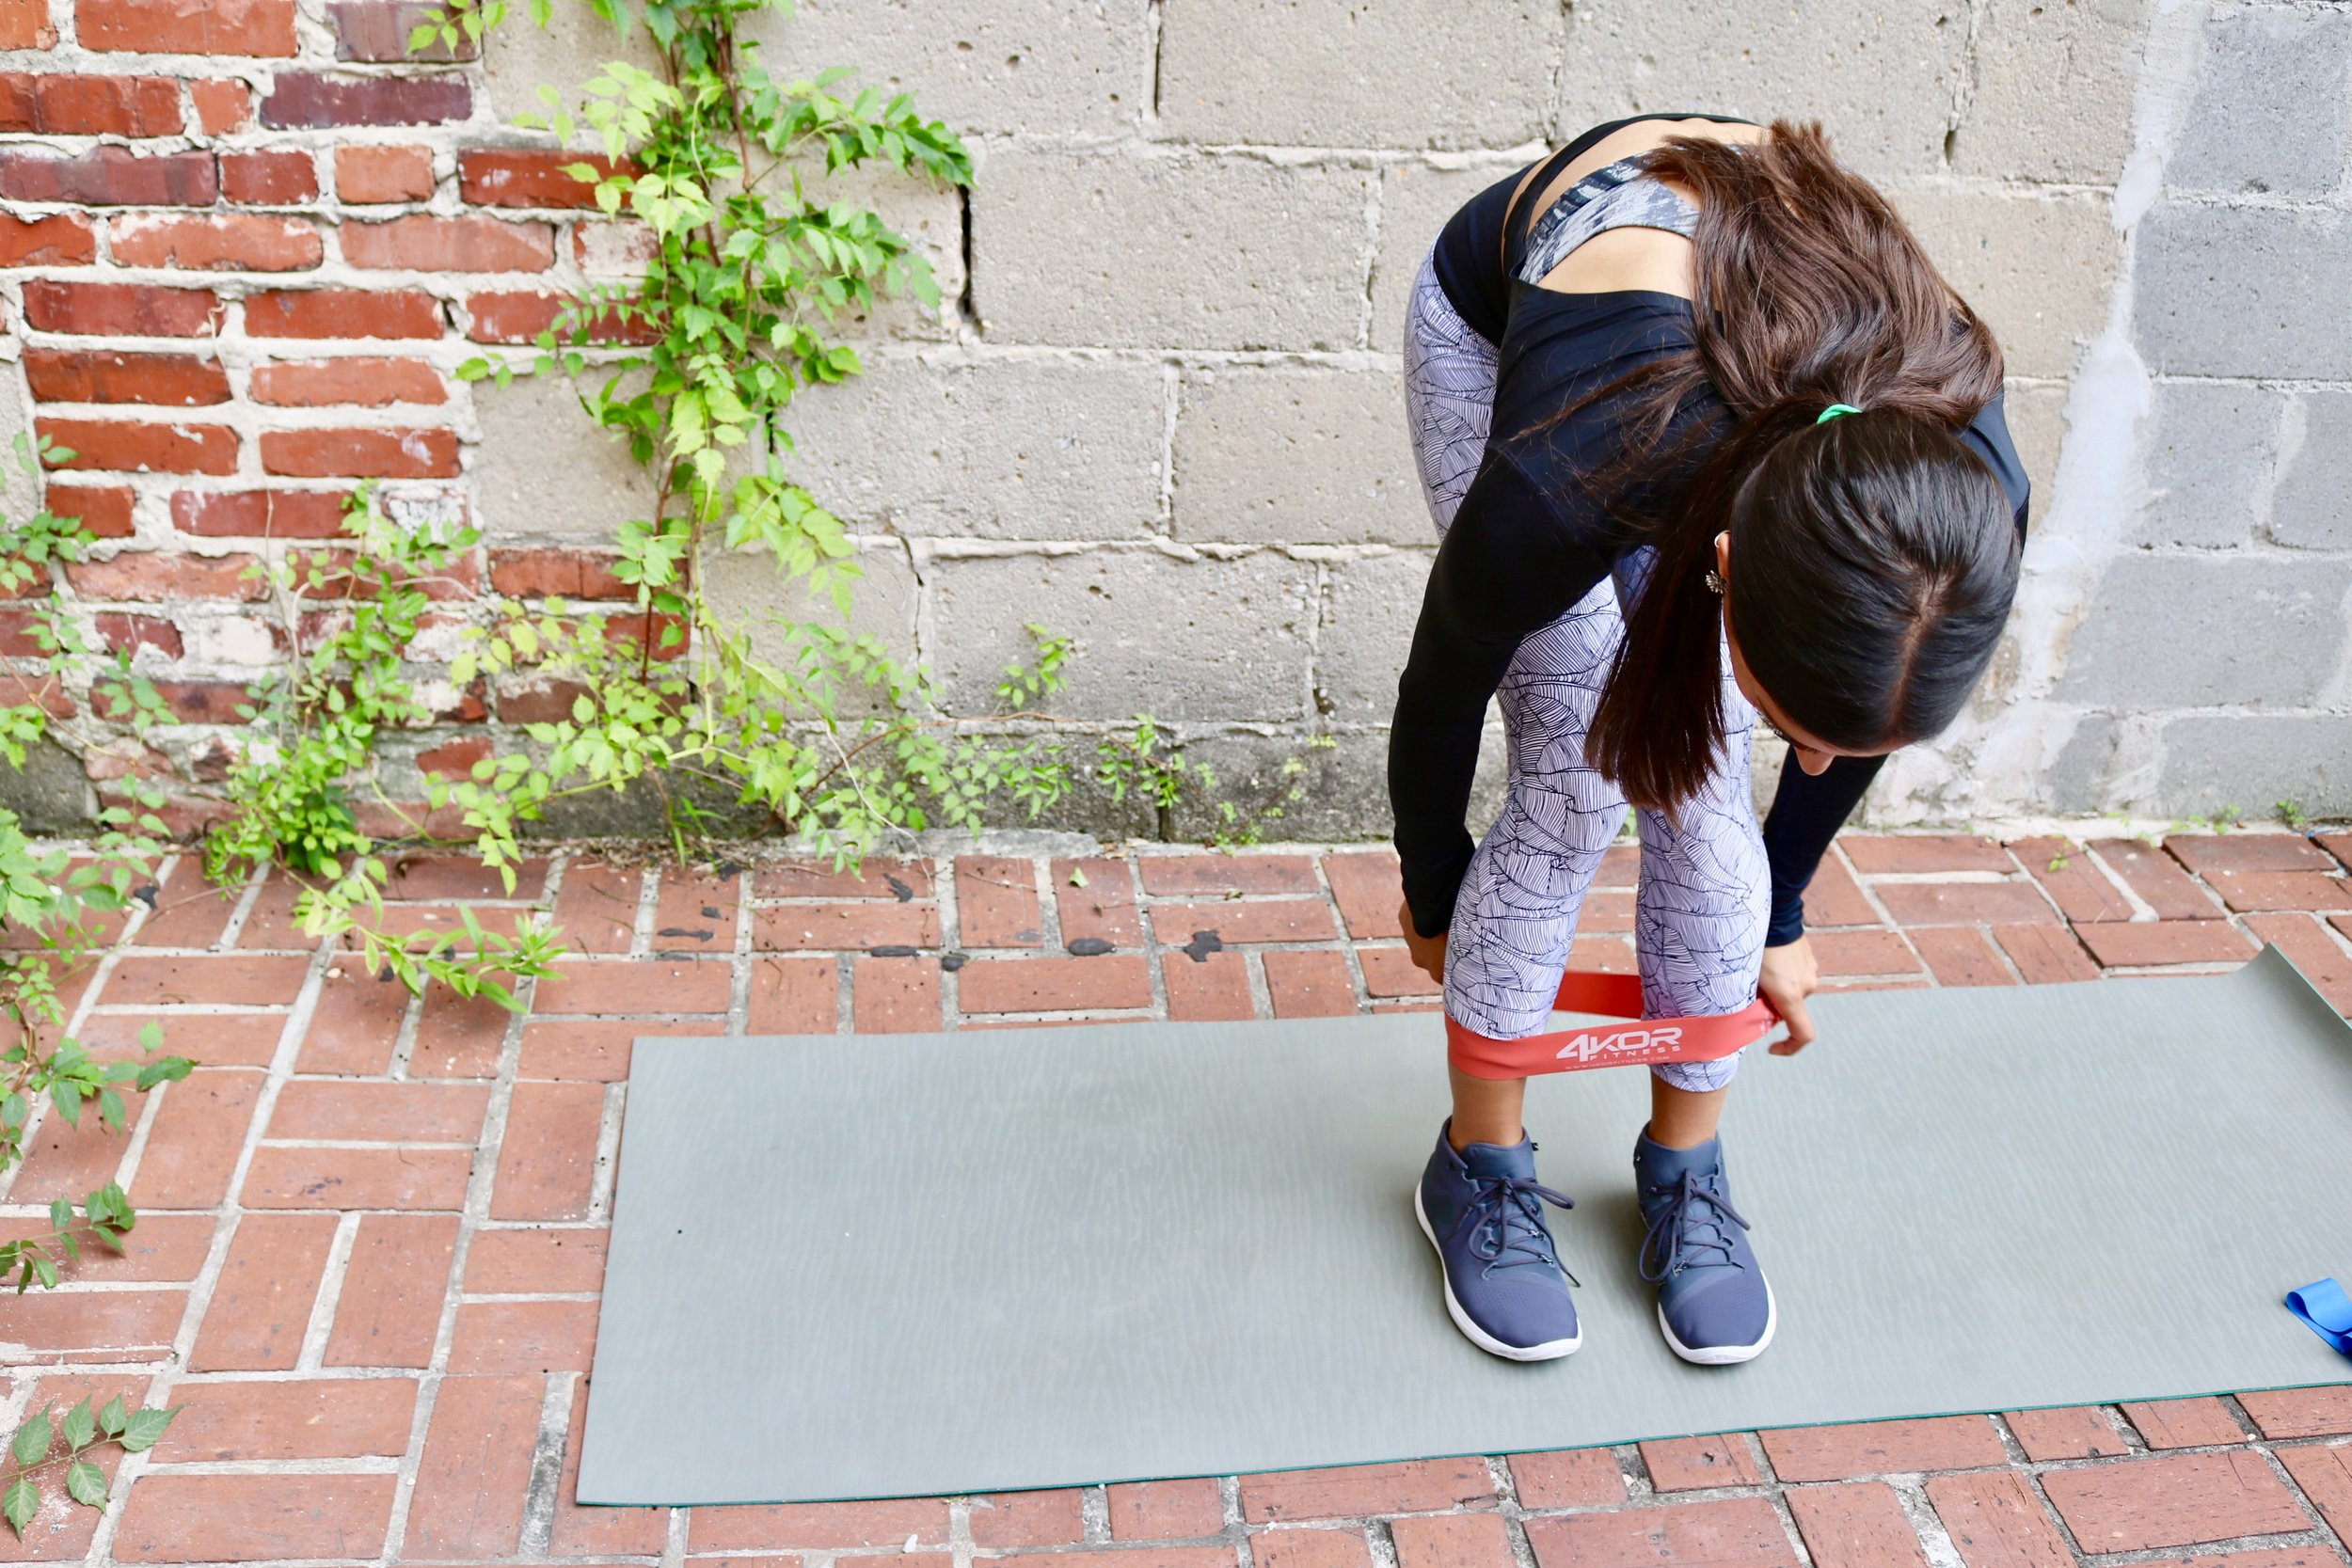 1. 15 Squat Jumps- Place the band right above your ankles. Get into a squat stance with your feet slightly turned out.